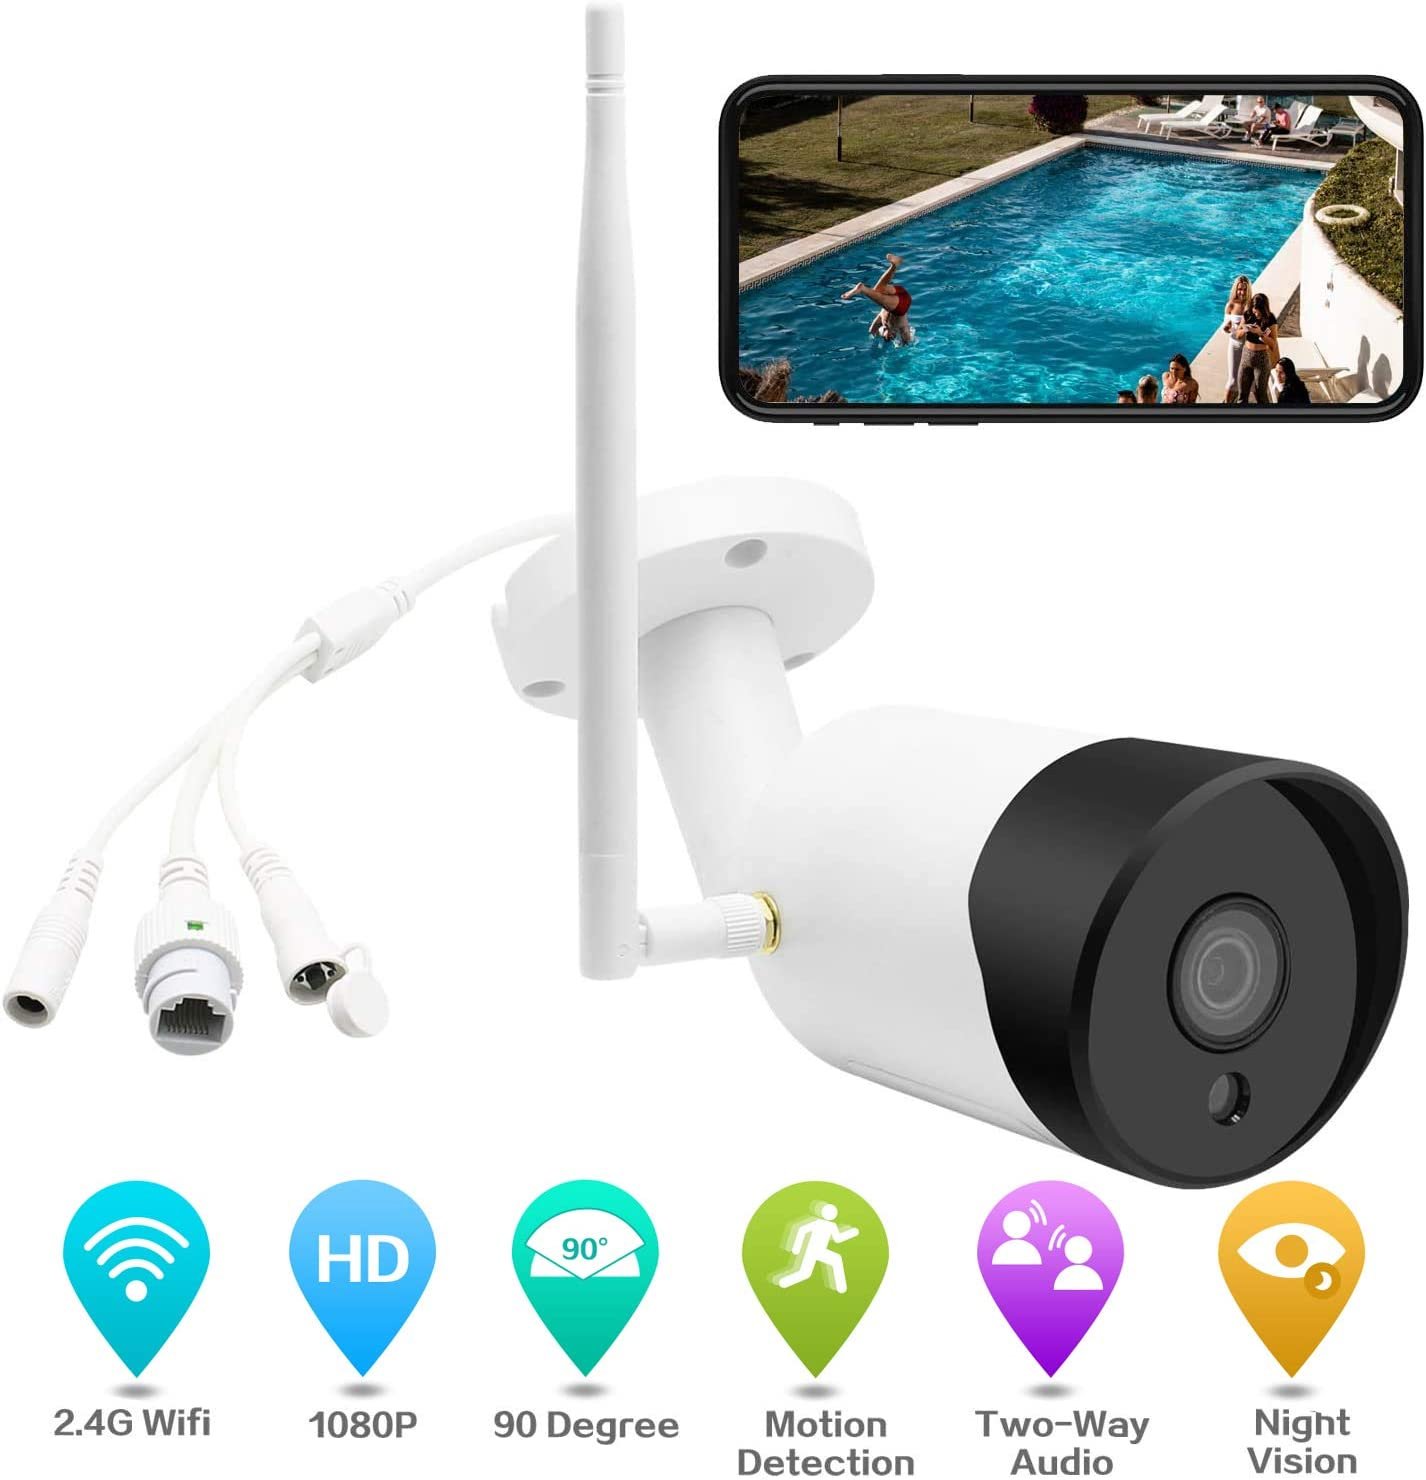 Wireless Outdoor Security Camera with 2-Way Audio, 2.4G WiFi Security Cameras with Night Vision, Motion Detection,1080P IP Home Security Camera System Outside Surveillance Security Camera with Adapter